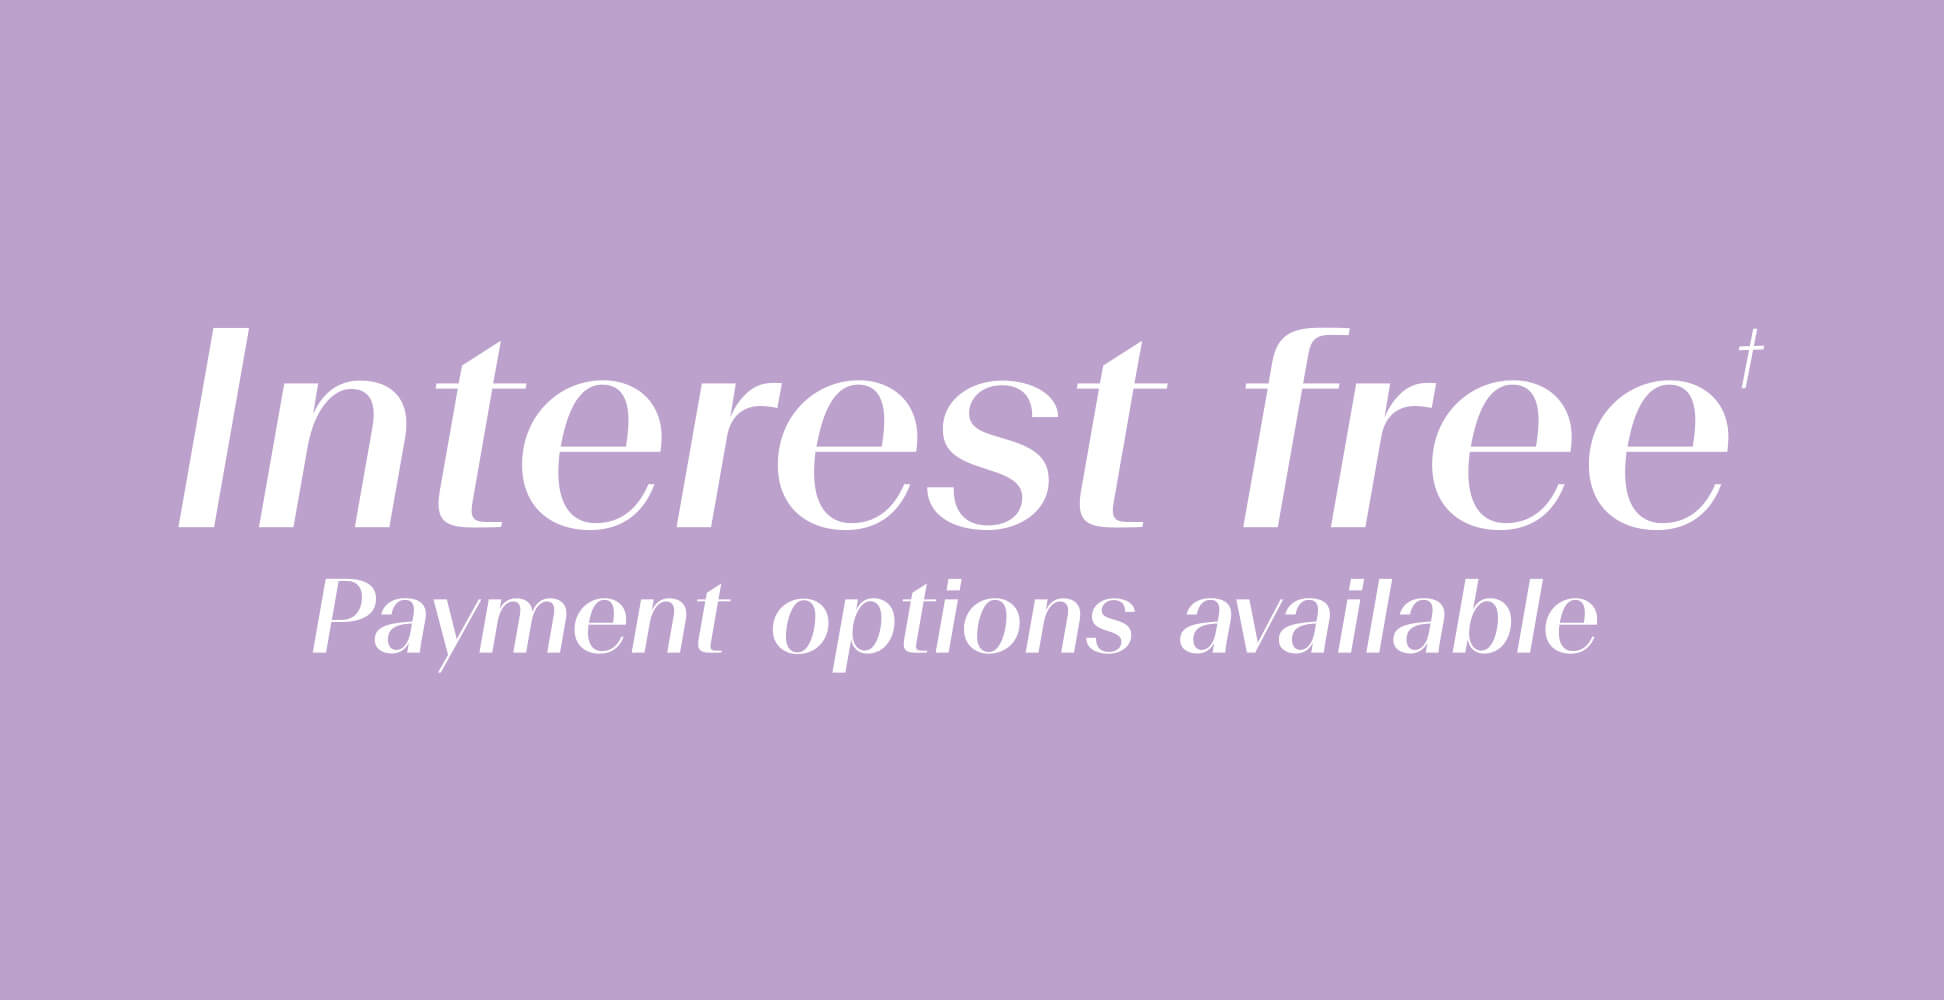 Interest free† payment options available